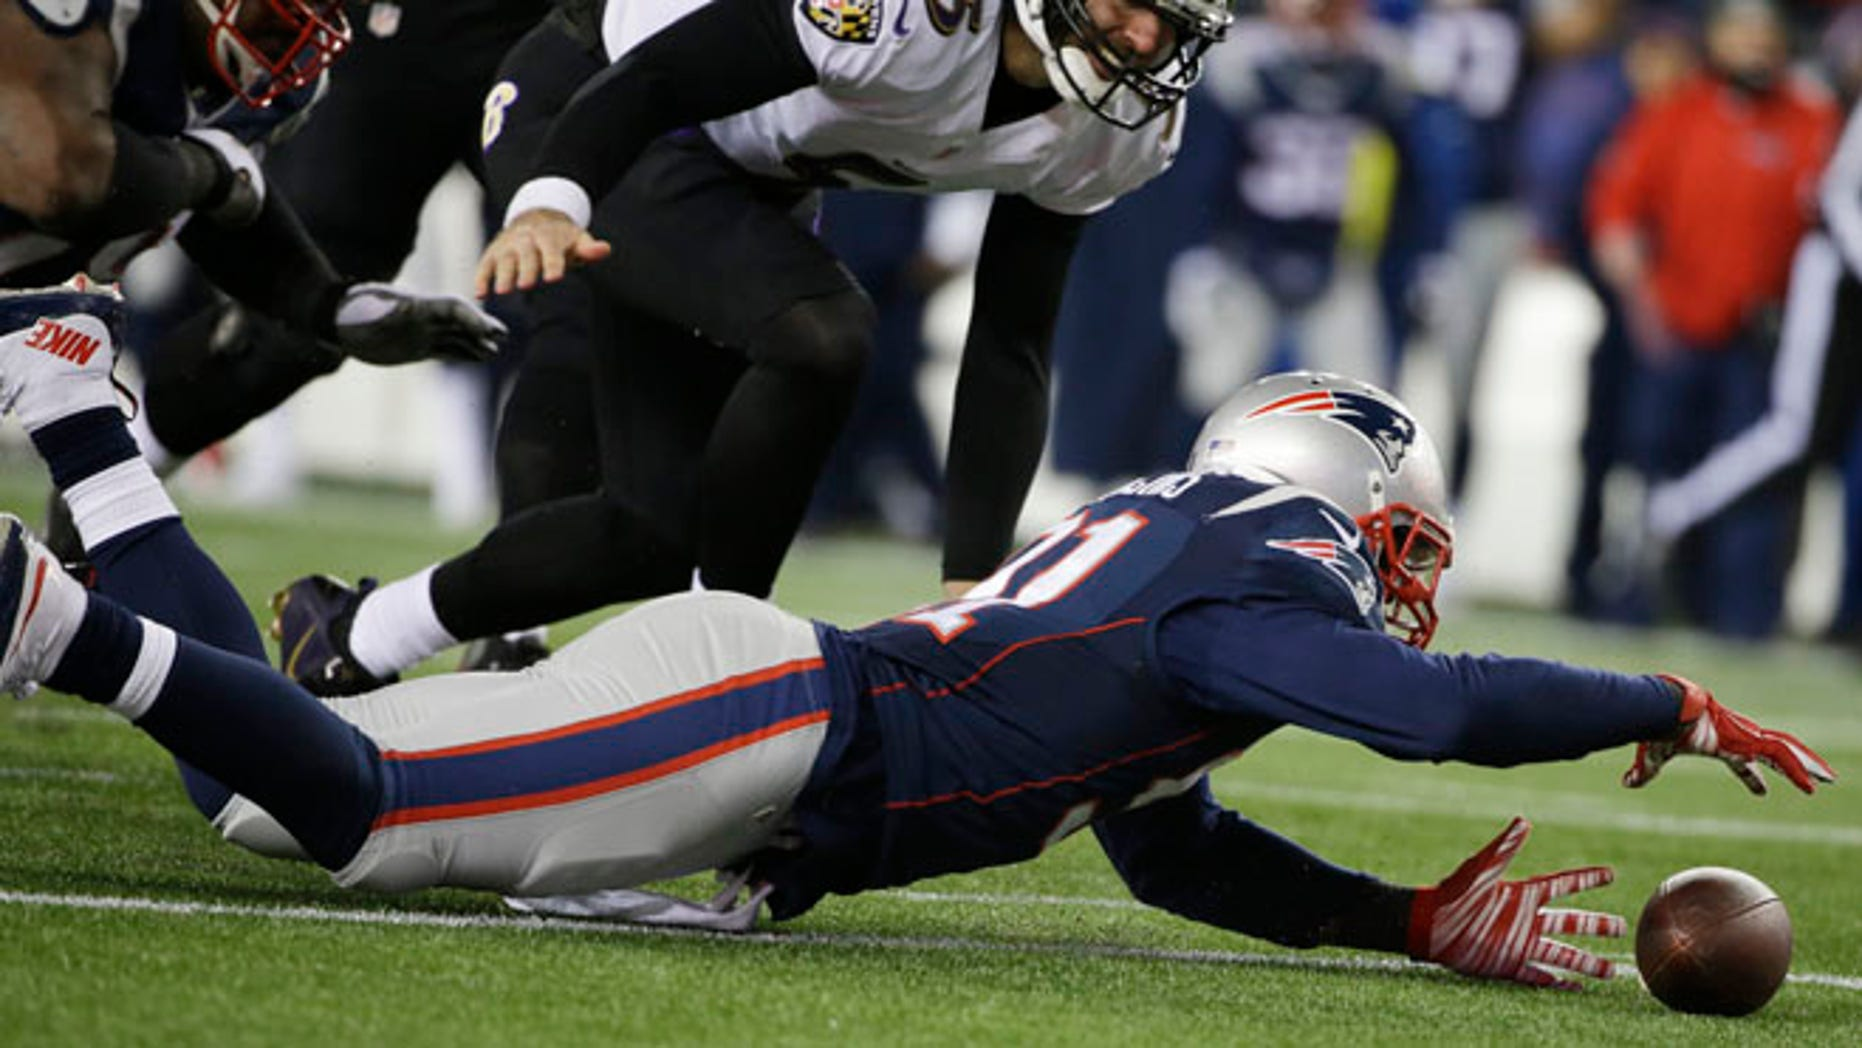 Jan. 10, 2015: New England Patriots outside linebacker Jamie Collins (91) recovers a fumble by Baltimore Ravens quarterback Joe Flacco (5) after a sack in the second half of an NFL divisional playoff football game in Foxborough, Mass. (AP)